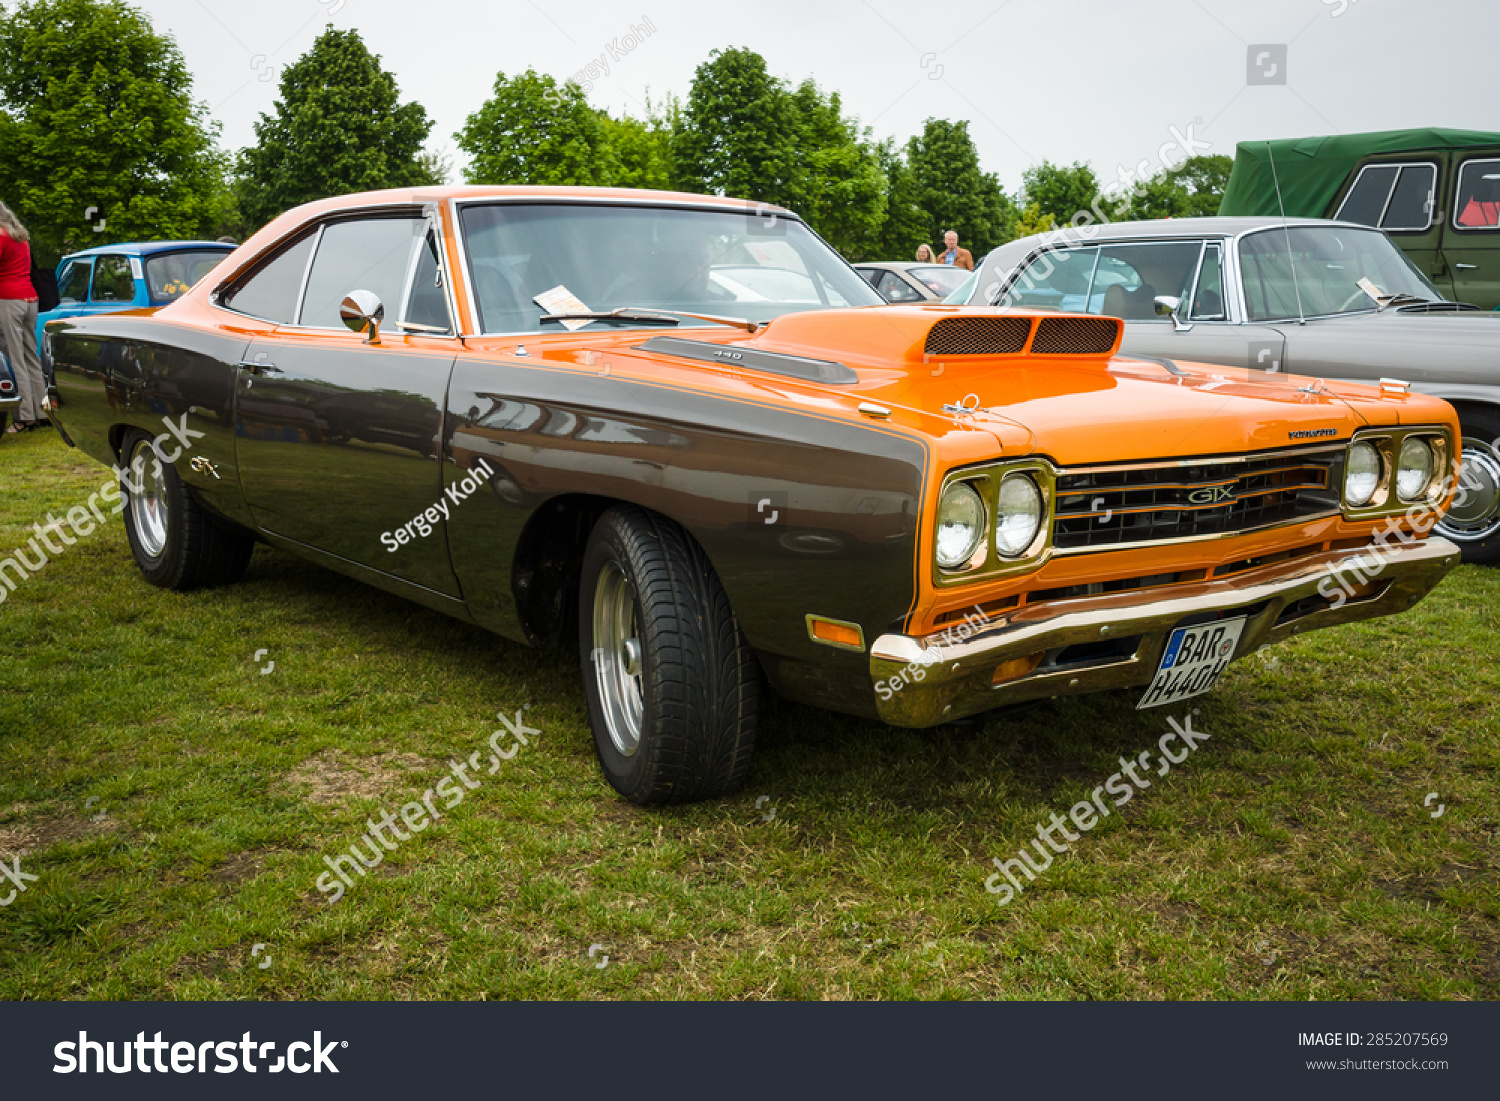 Paaren Im Glien Germany May 23 Stock Photo Edit Now 285207569 1960 Plymouth Road Runner Gtx 2015 Muscle Car